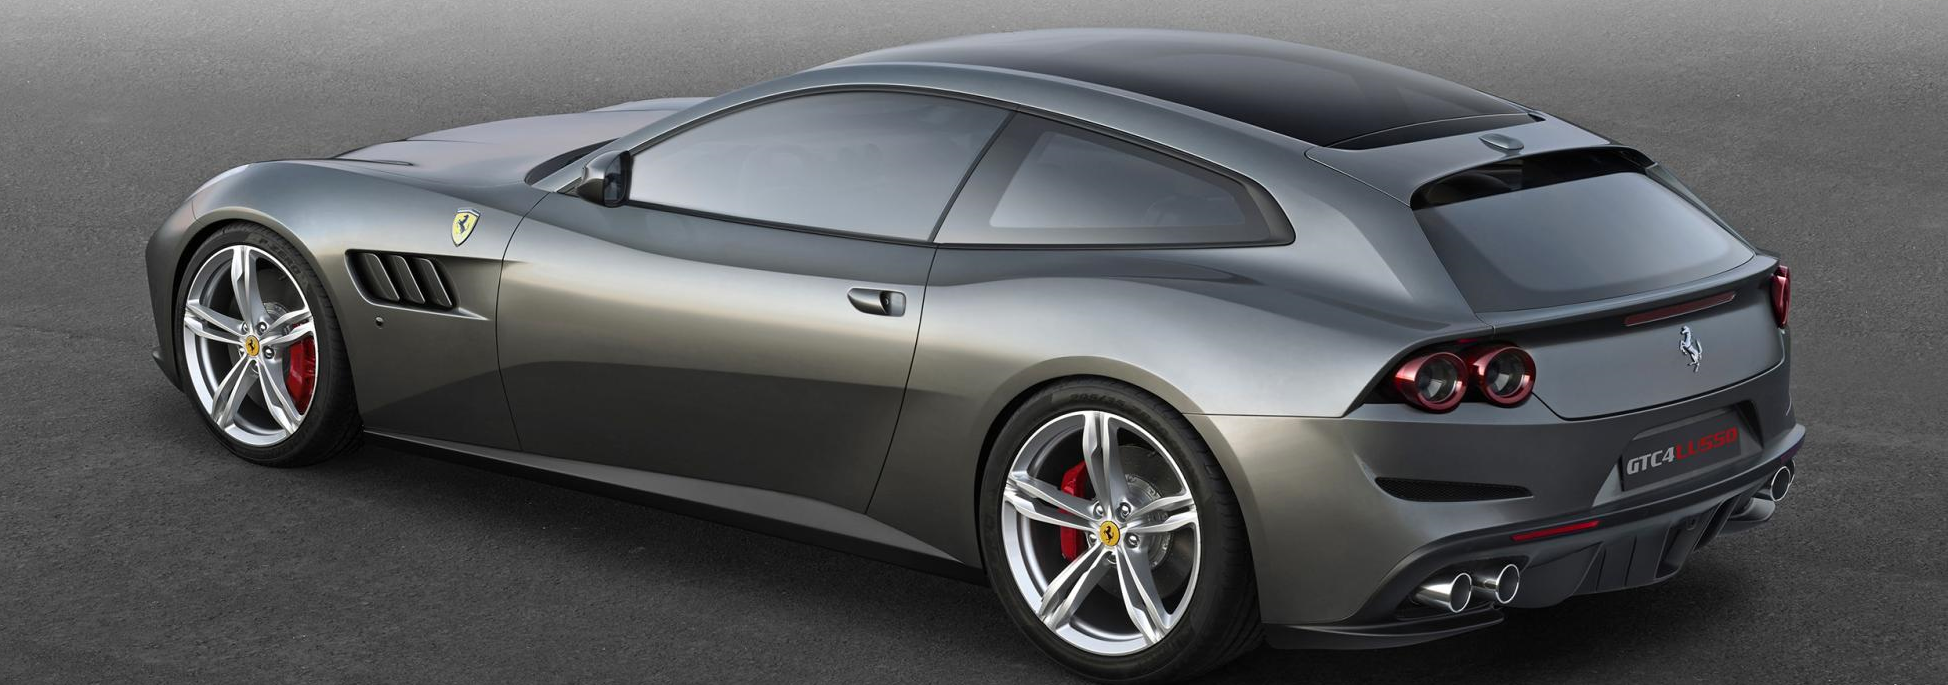 The Ferrari GTC4Lusso serves as a breath of fresh air in a very congested two-seat supercar coupe market by breaking away from industry norms with a four-seat configuration. Designed at the Ferrari Styling Center in Maranello, Italy, under the supervision of acclaimed designer Flavio Manzoni, the GTC4Lusso replaces the less attractive, four-wheel-drive Ferrari FF.